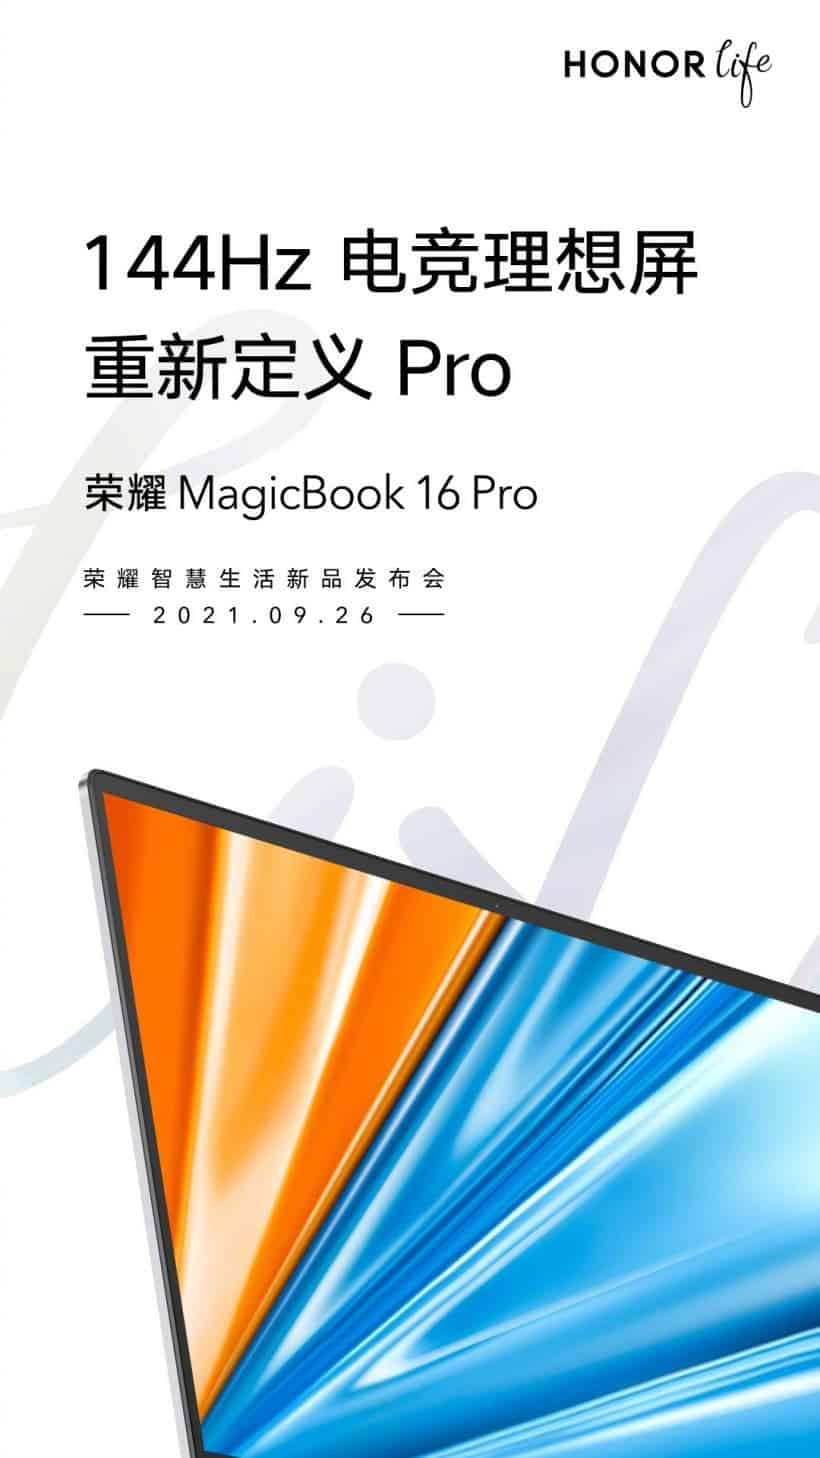 Honor MagicBook 16 Pro